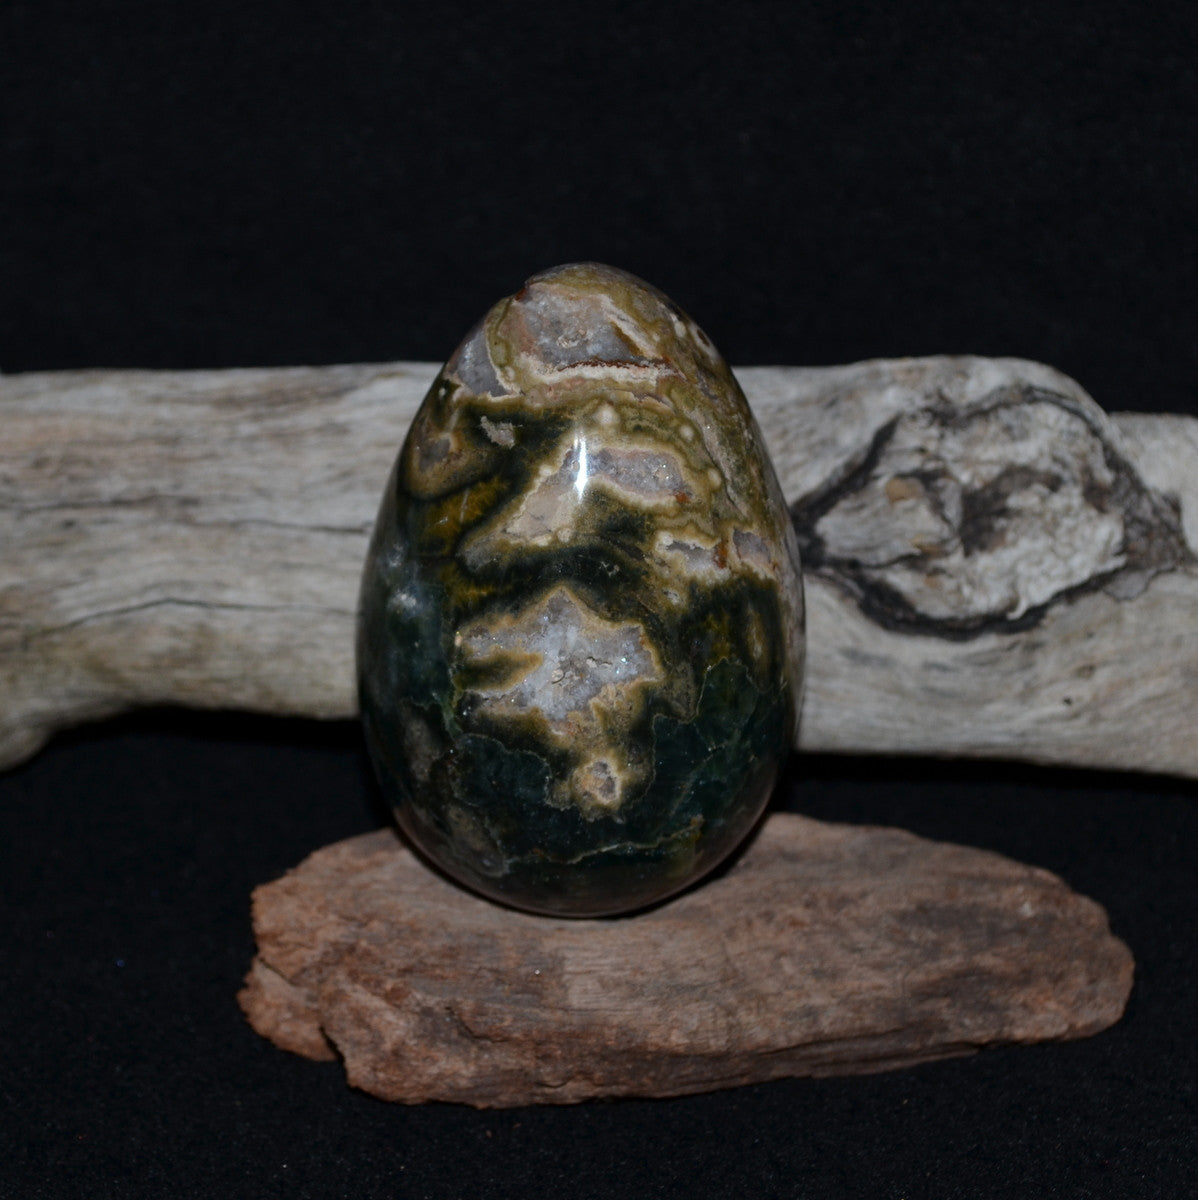 Ocean Jasper Large Egg Madagascar - Enthusiasm Joy Hope - Shop now at Illiom Crystals